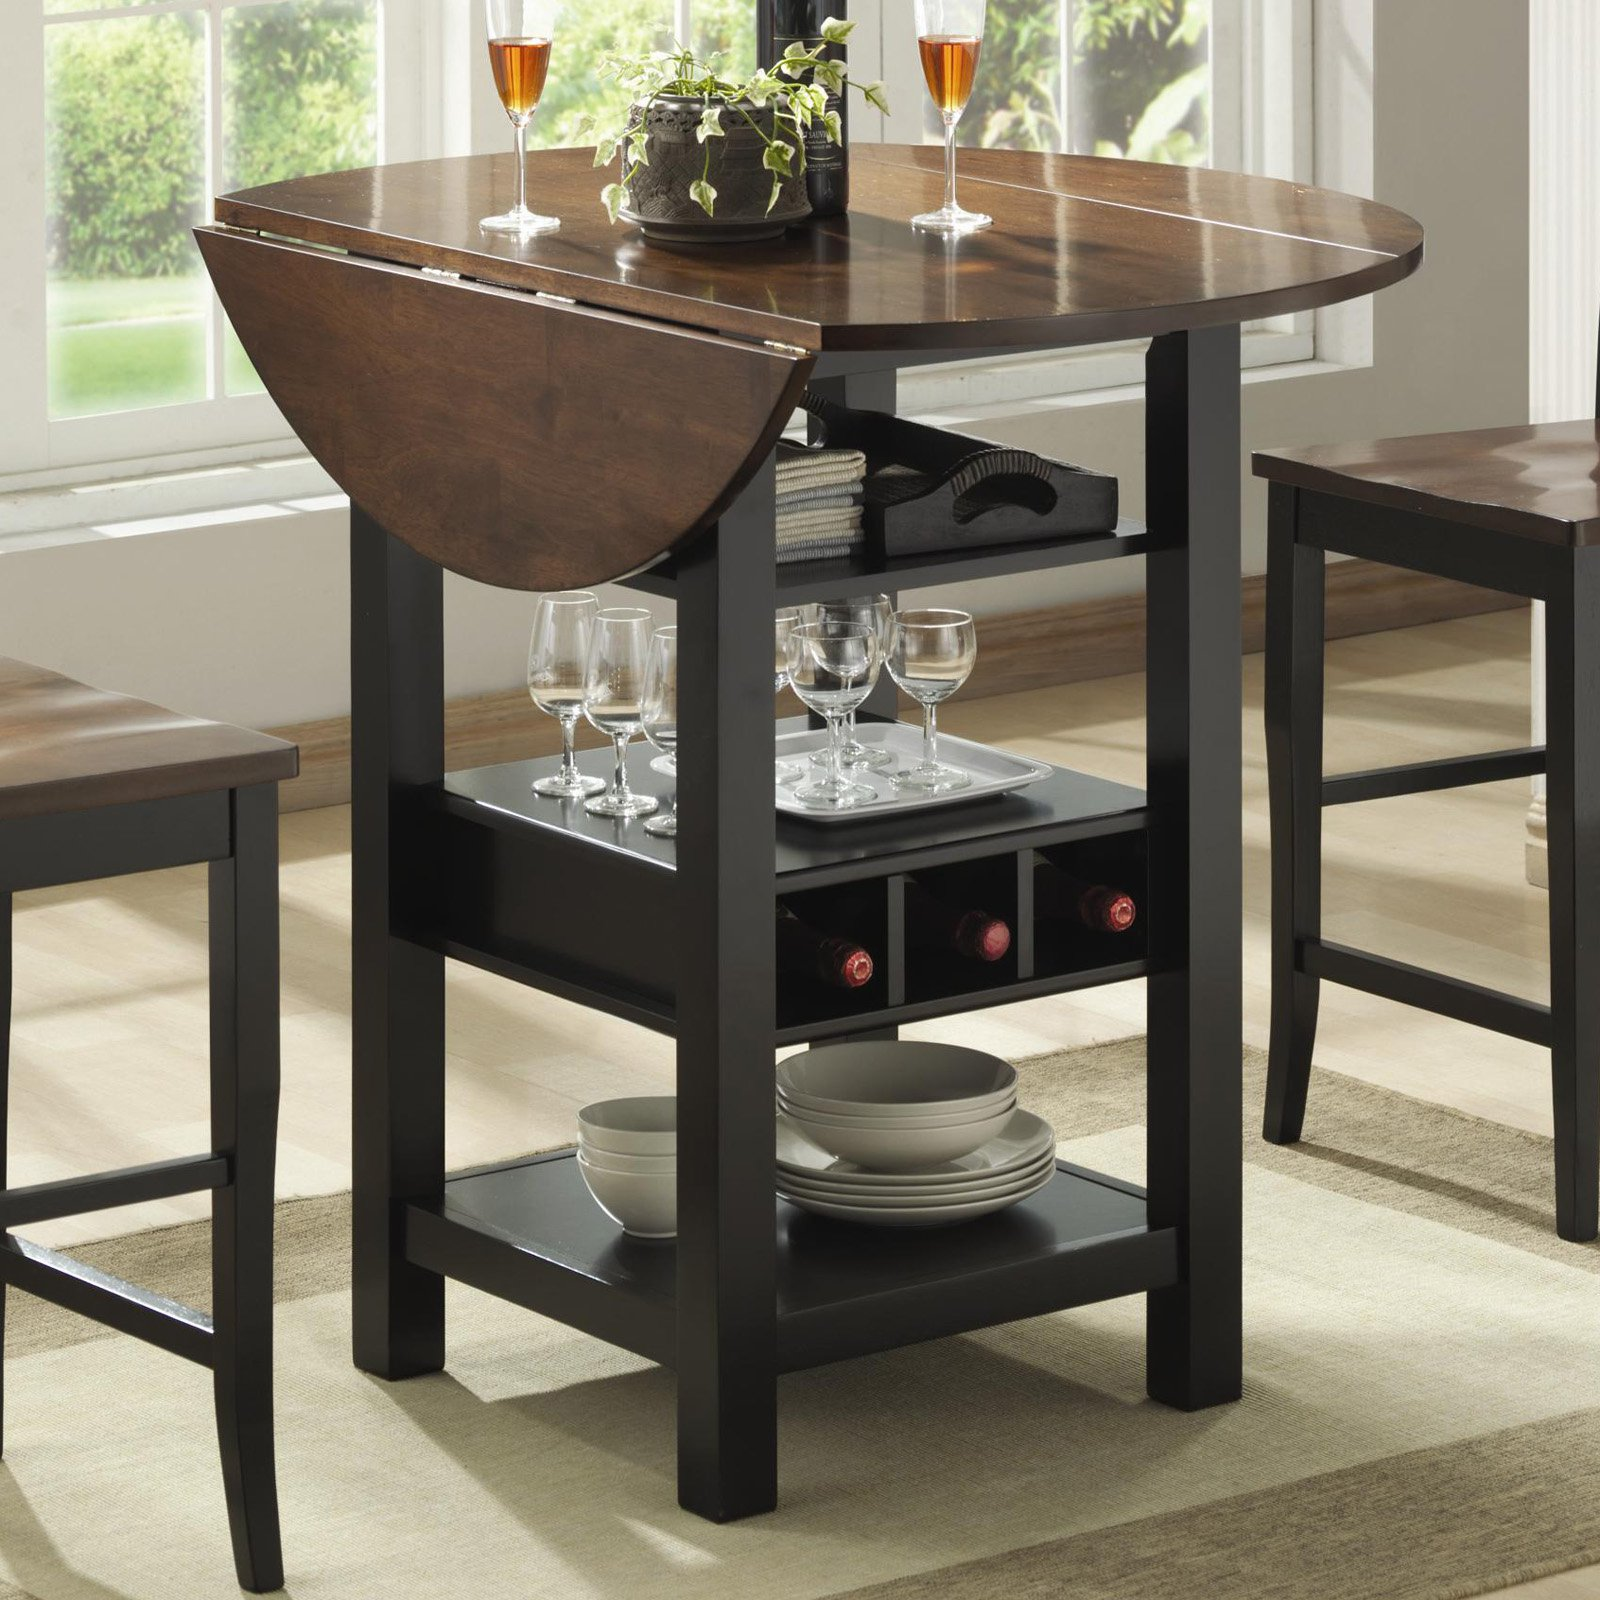 Kitchen drop leaf tables - Ridgewood Counter Height Drop Leaf Dining Table With Storage Walmart Com